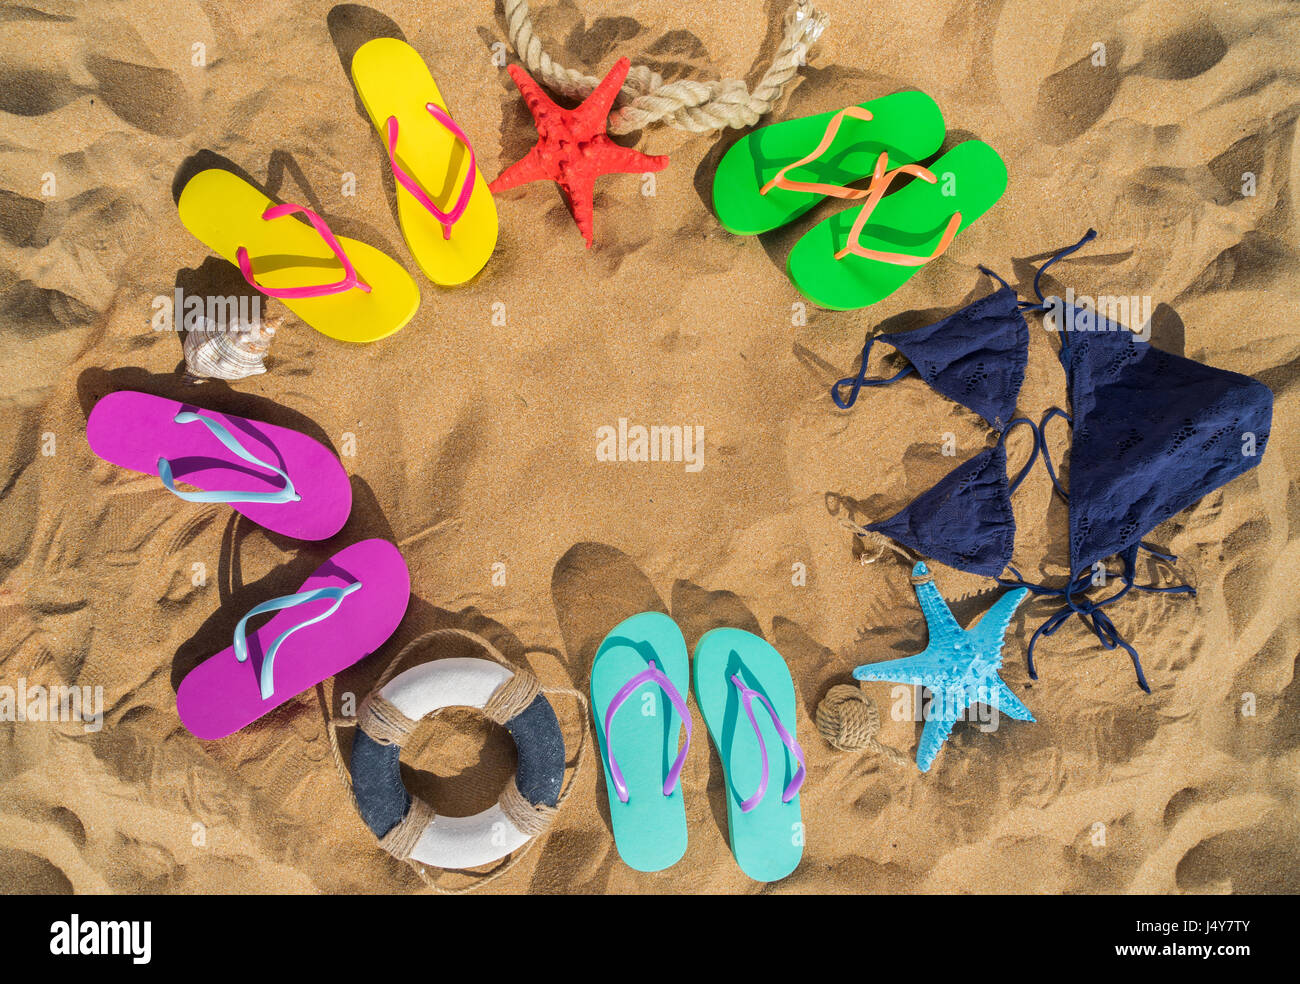 Summer beach fun - frame on sand with colorful sandals and swimming ...